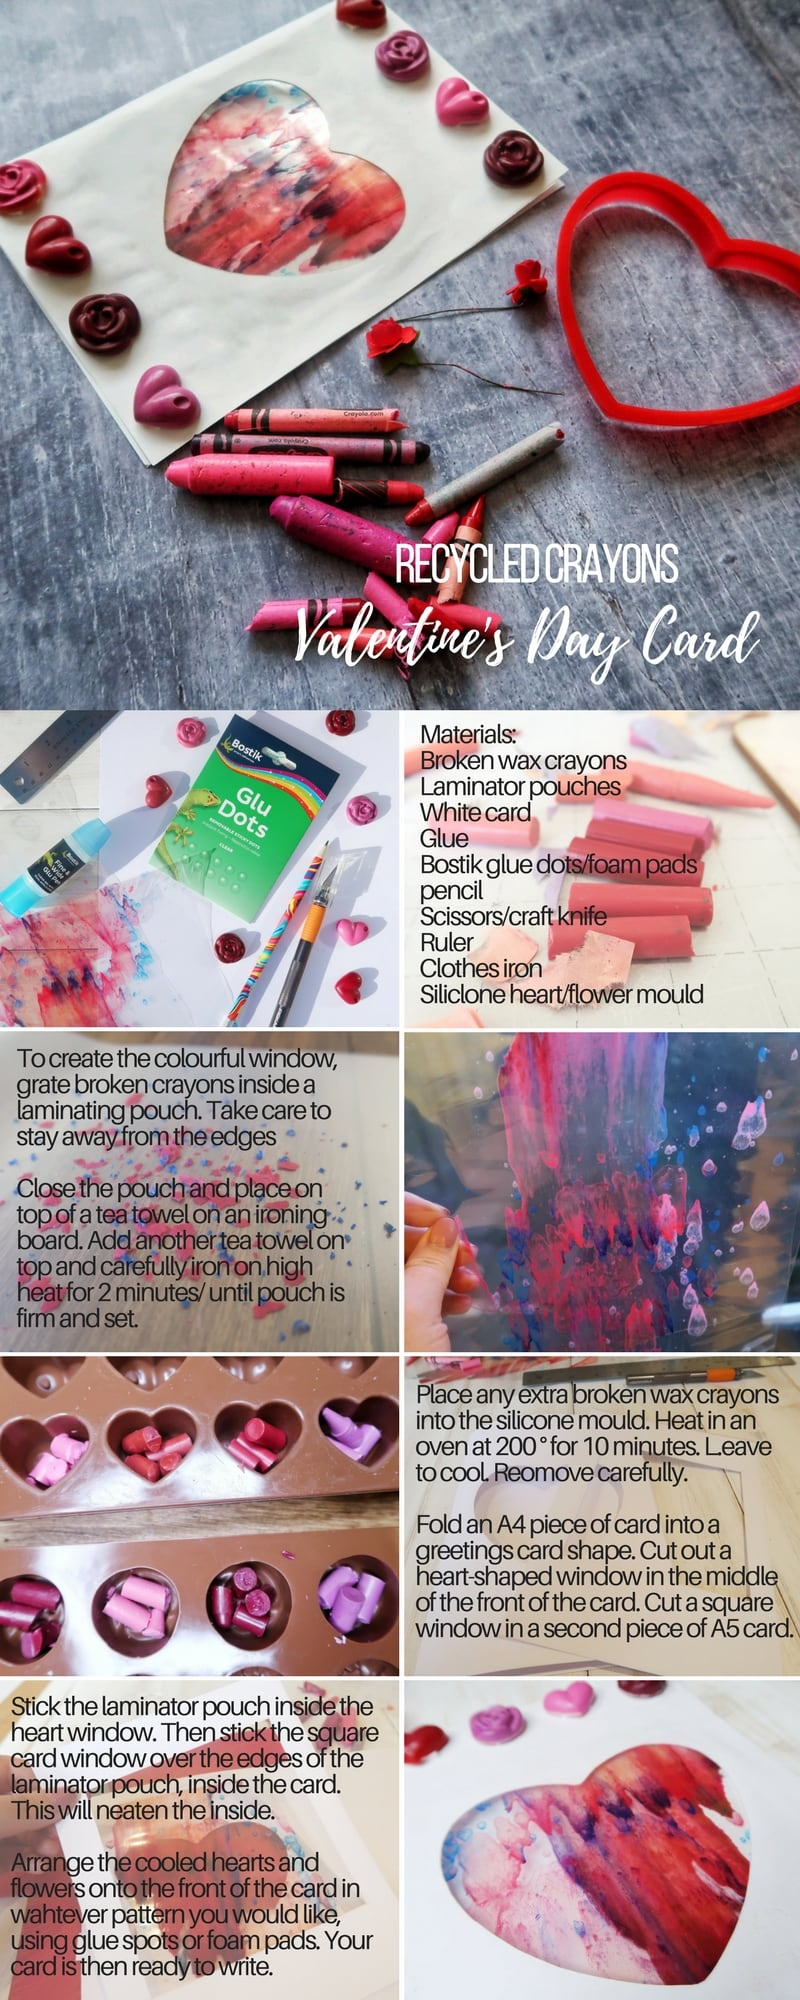 A phtoto tutorial for a Valentine's Day card craft , using left over wax crayons. See below image for full instructions.